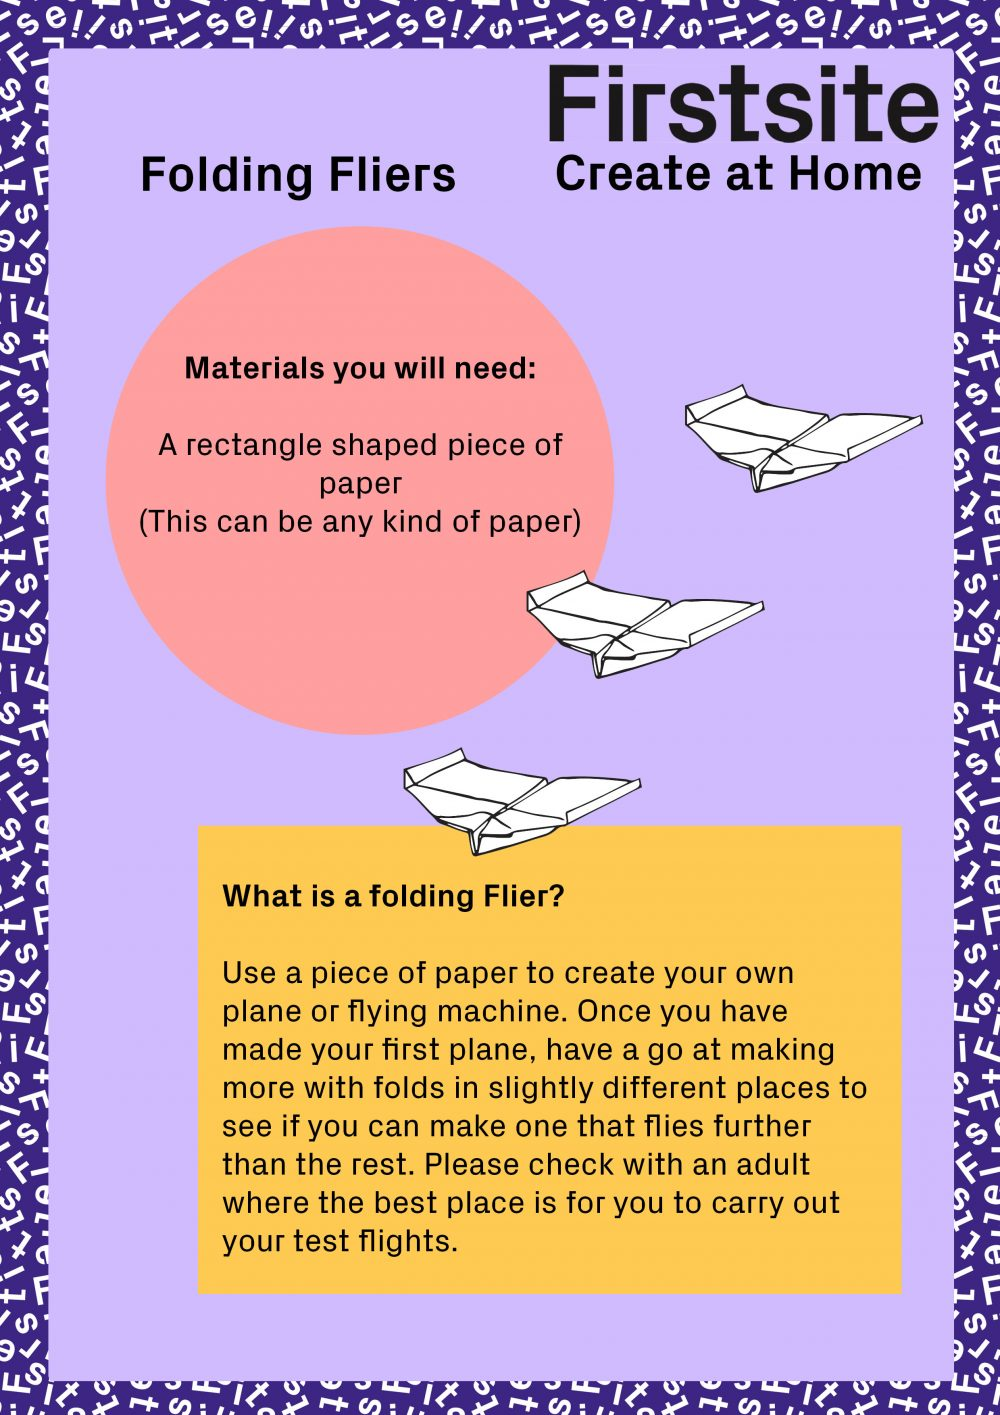 Firstsite Create at Home Folding Fliers Instructions page 1 of 3